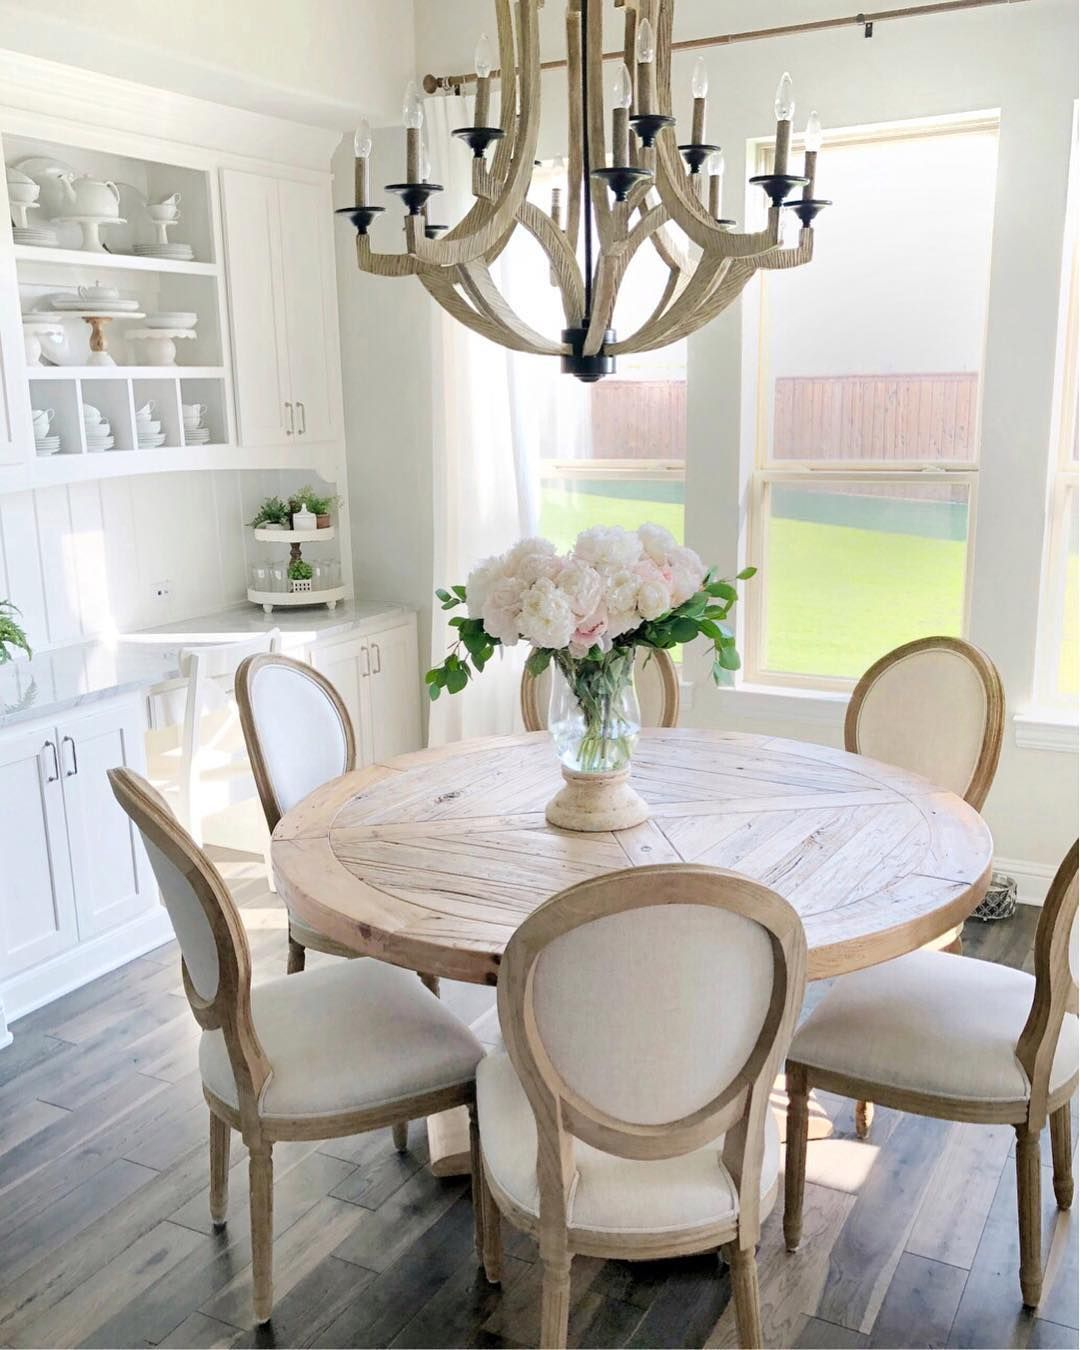 Make A Dining Room Table: 10 Farmhouse Dining Table For Any Homey Design